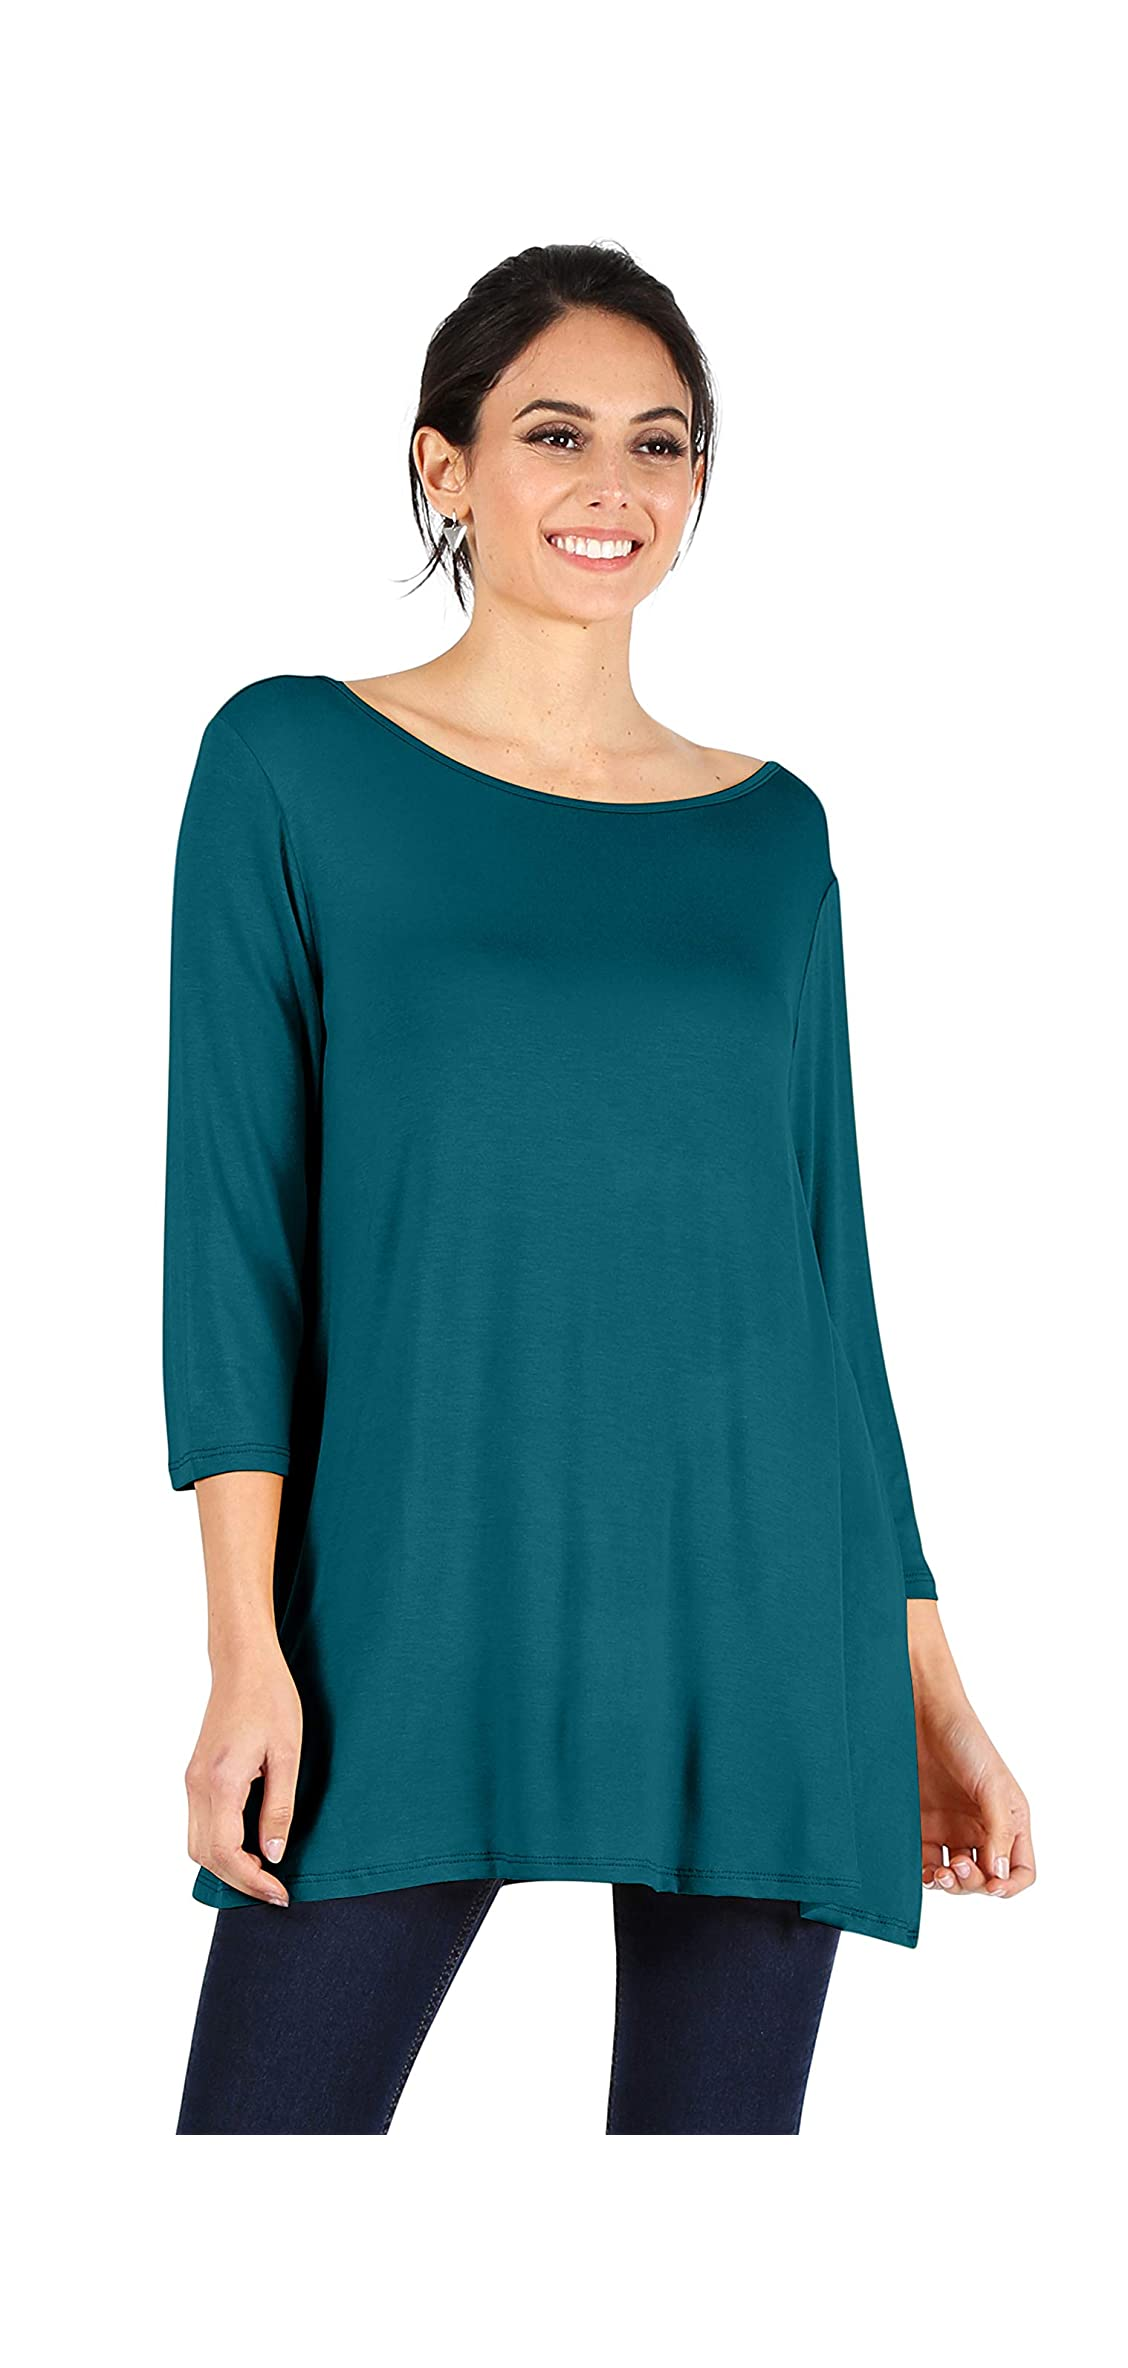 Womens Tunic Tops For Leggings Reg And Plus Size / Tunic